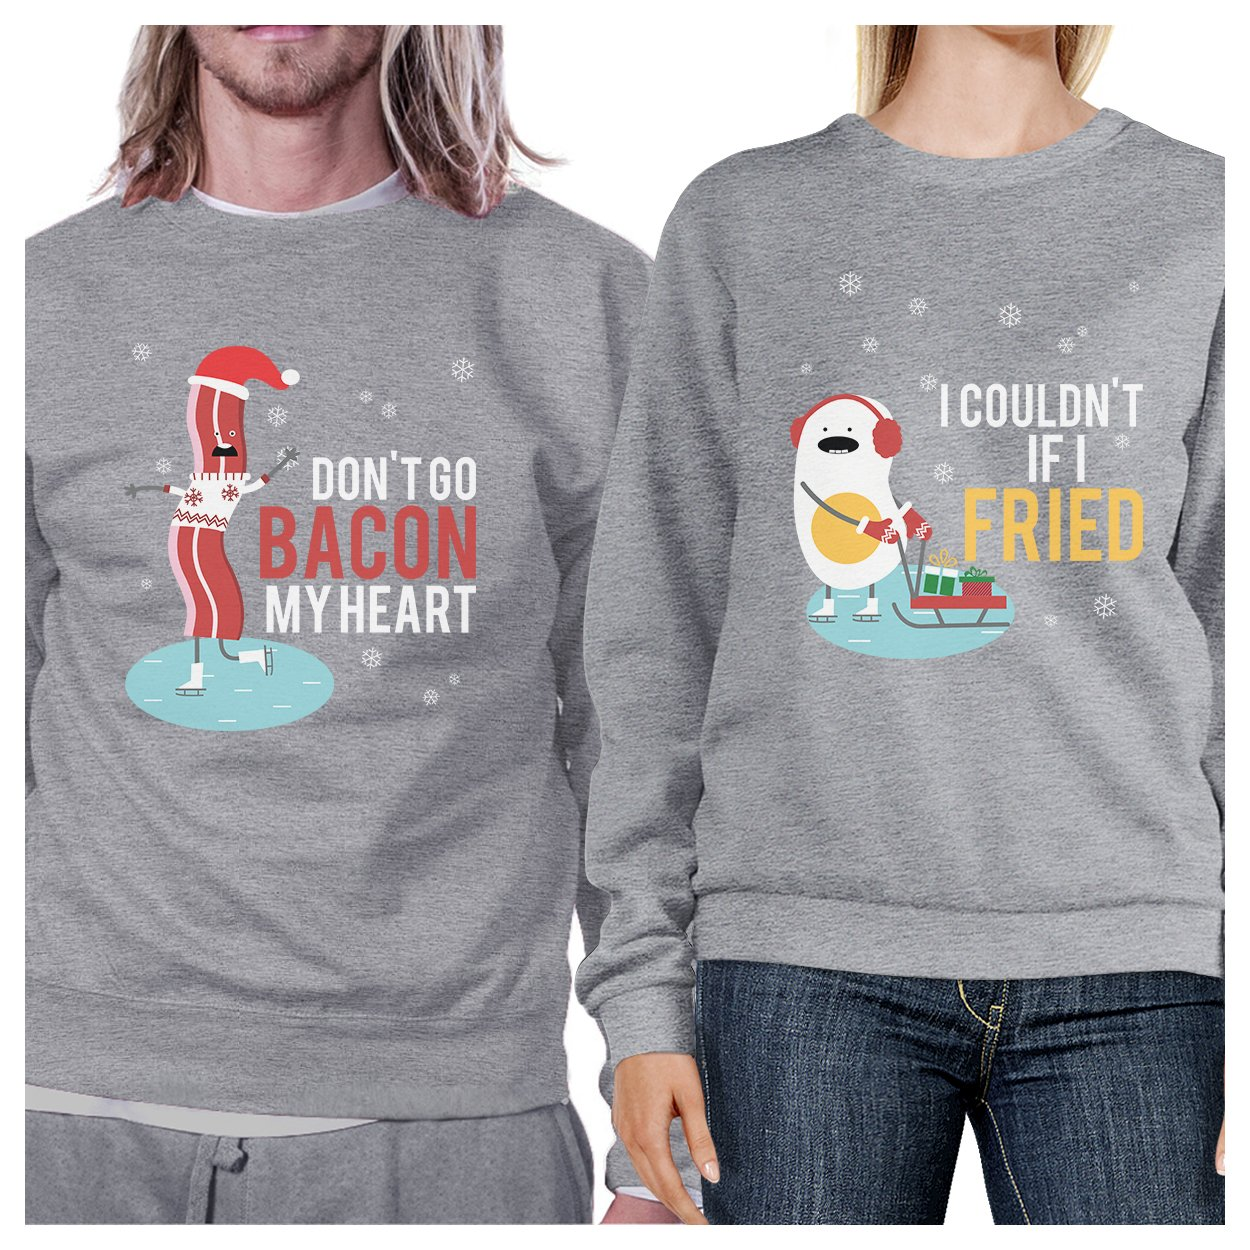 Bacon And Egg Winter Matching Couple Sweatshirts Funny Holiday Gift 365 Printing inc SS072HG MM WXS